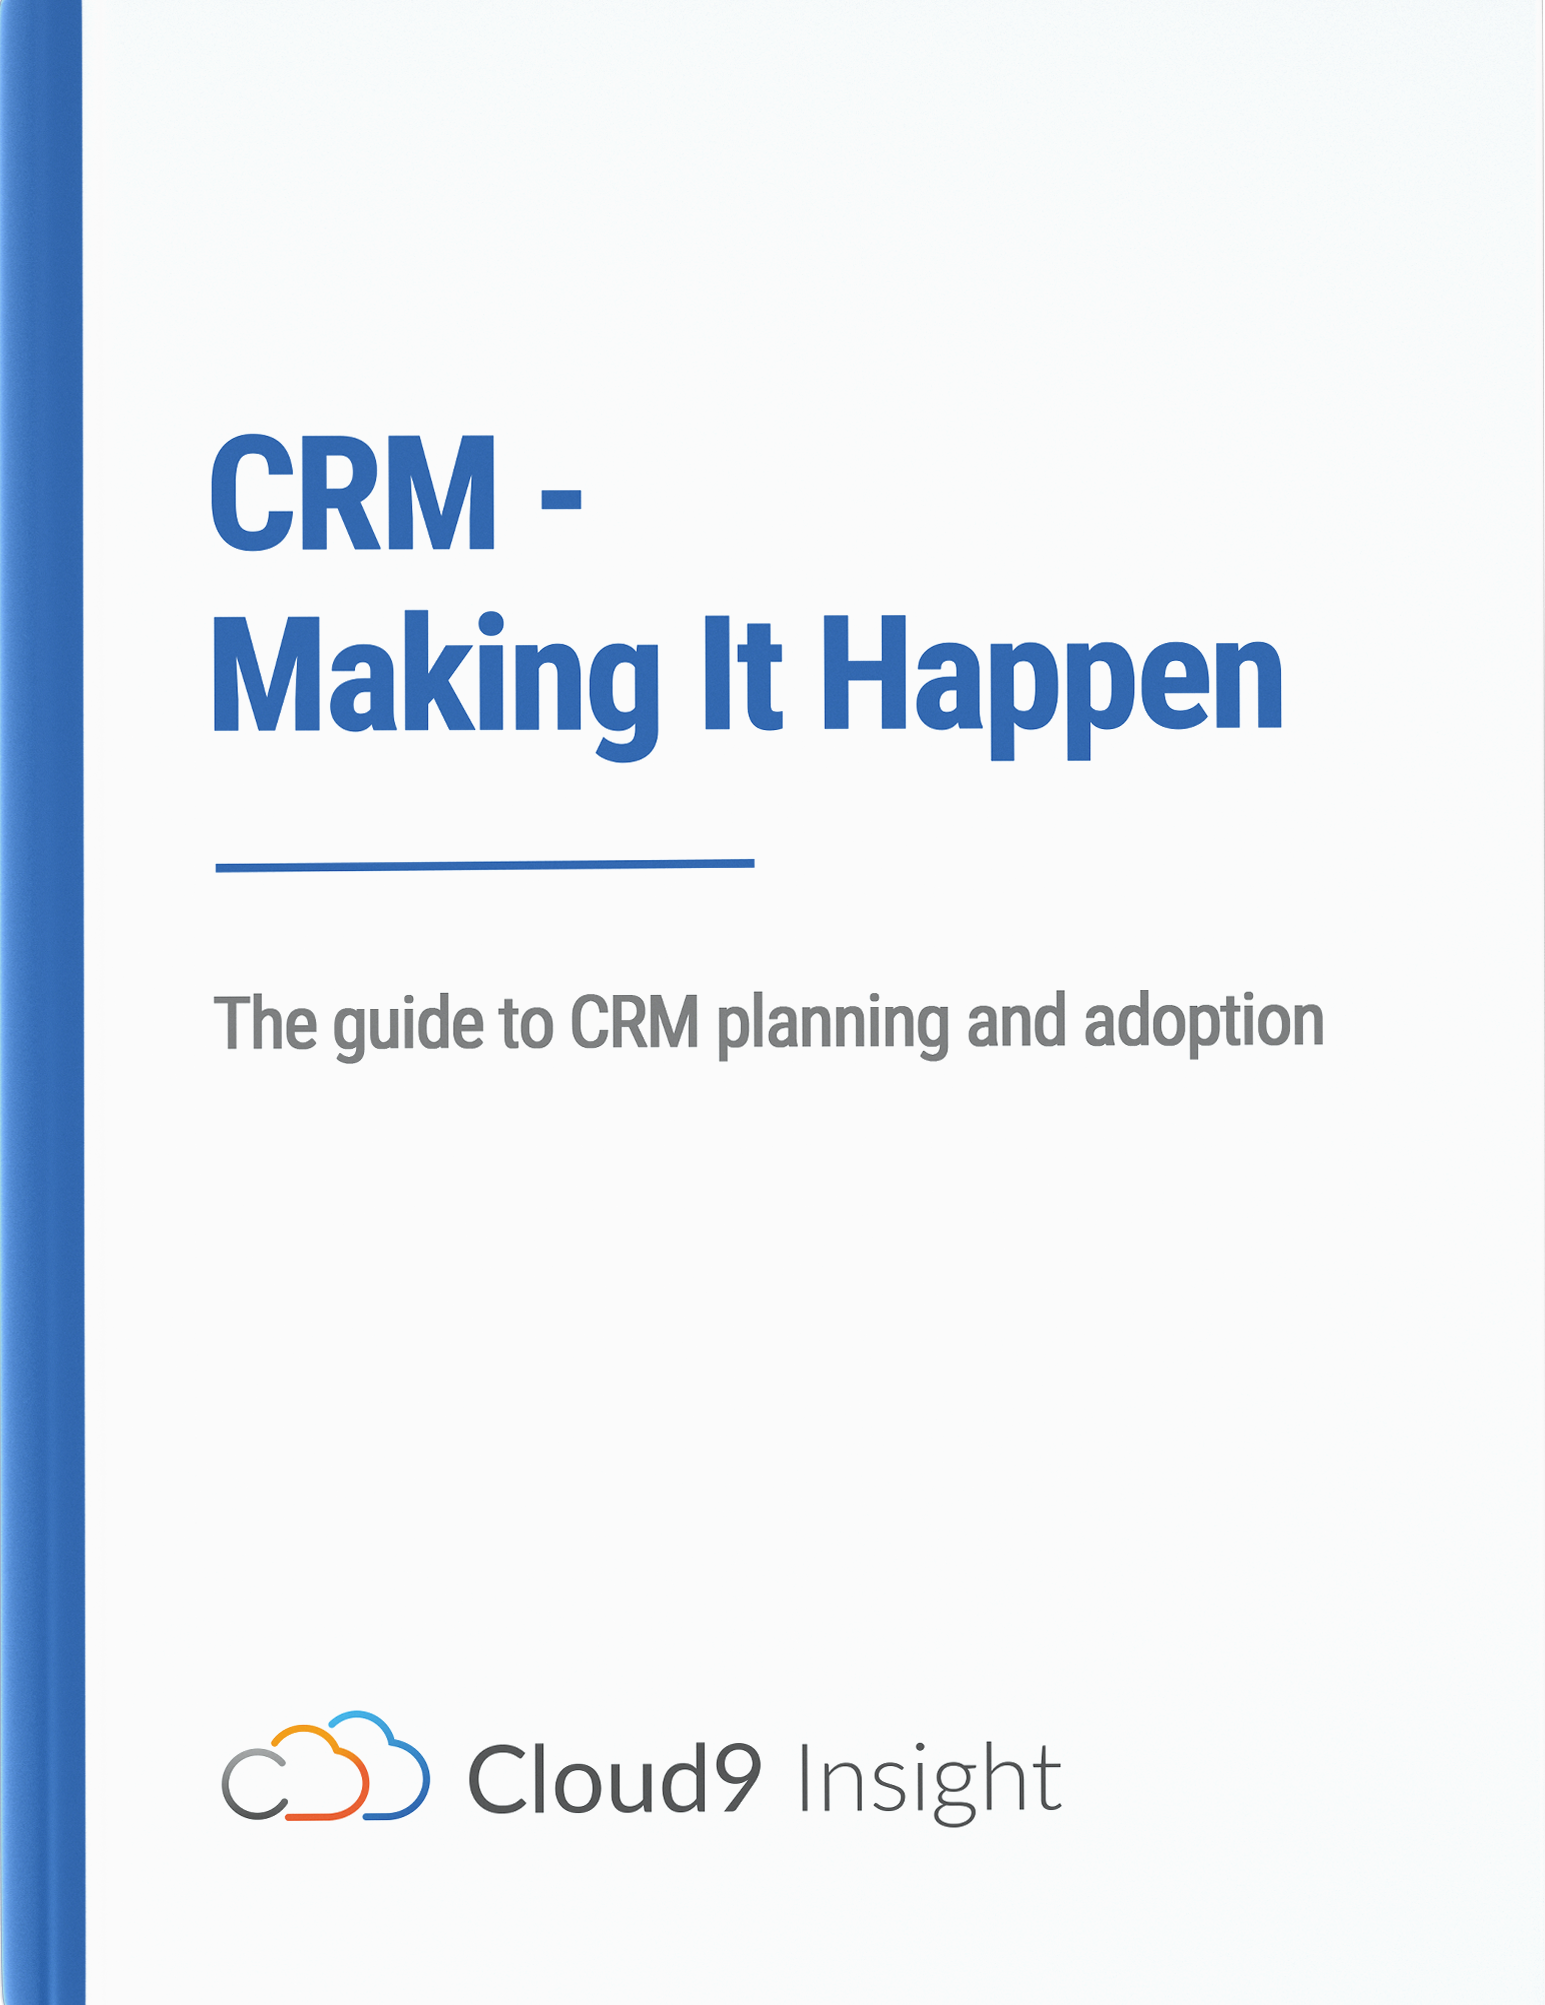 CRM Making it Happen - The Guide to Planning and Adoption